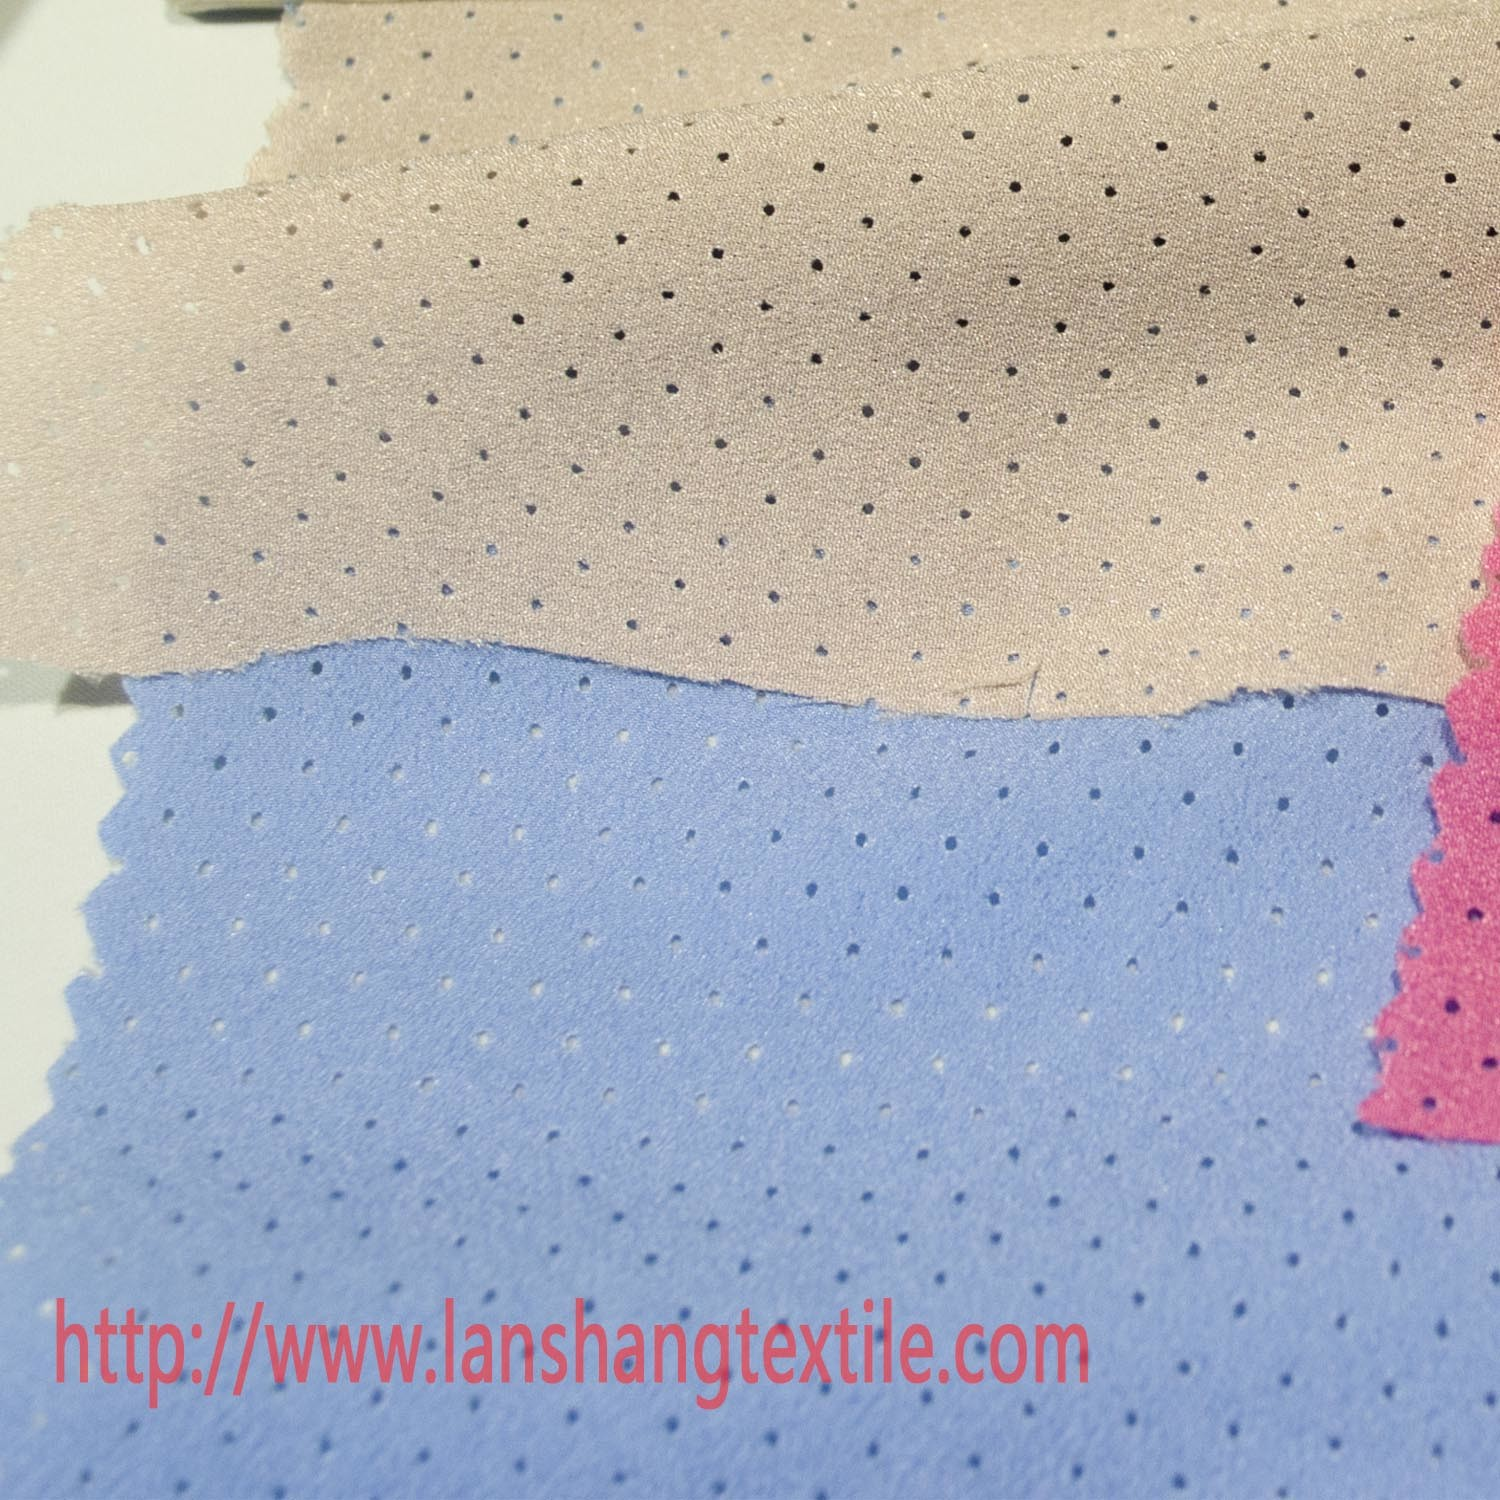 Polyester Fabric Dyed Fabric Chemical Fiberb Perforated Fabric for Woman Dress Coat Children Garment Home Textile